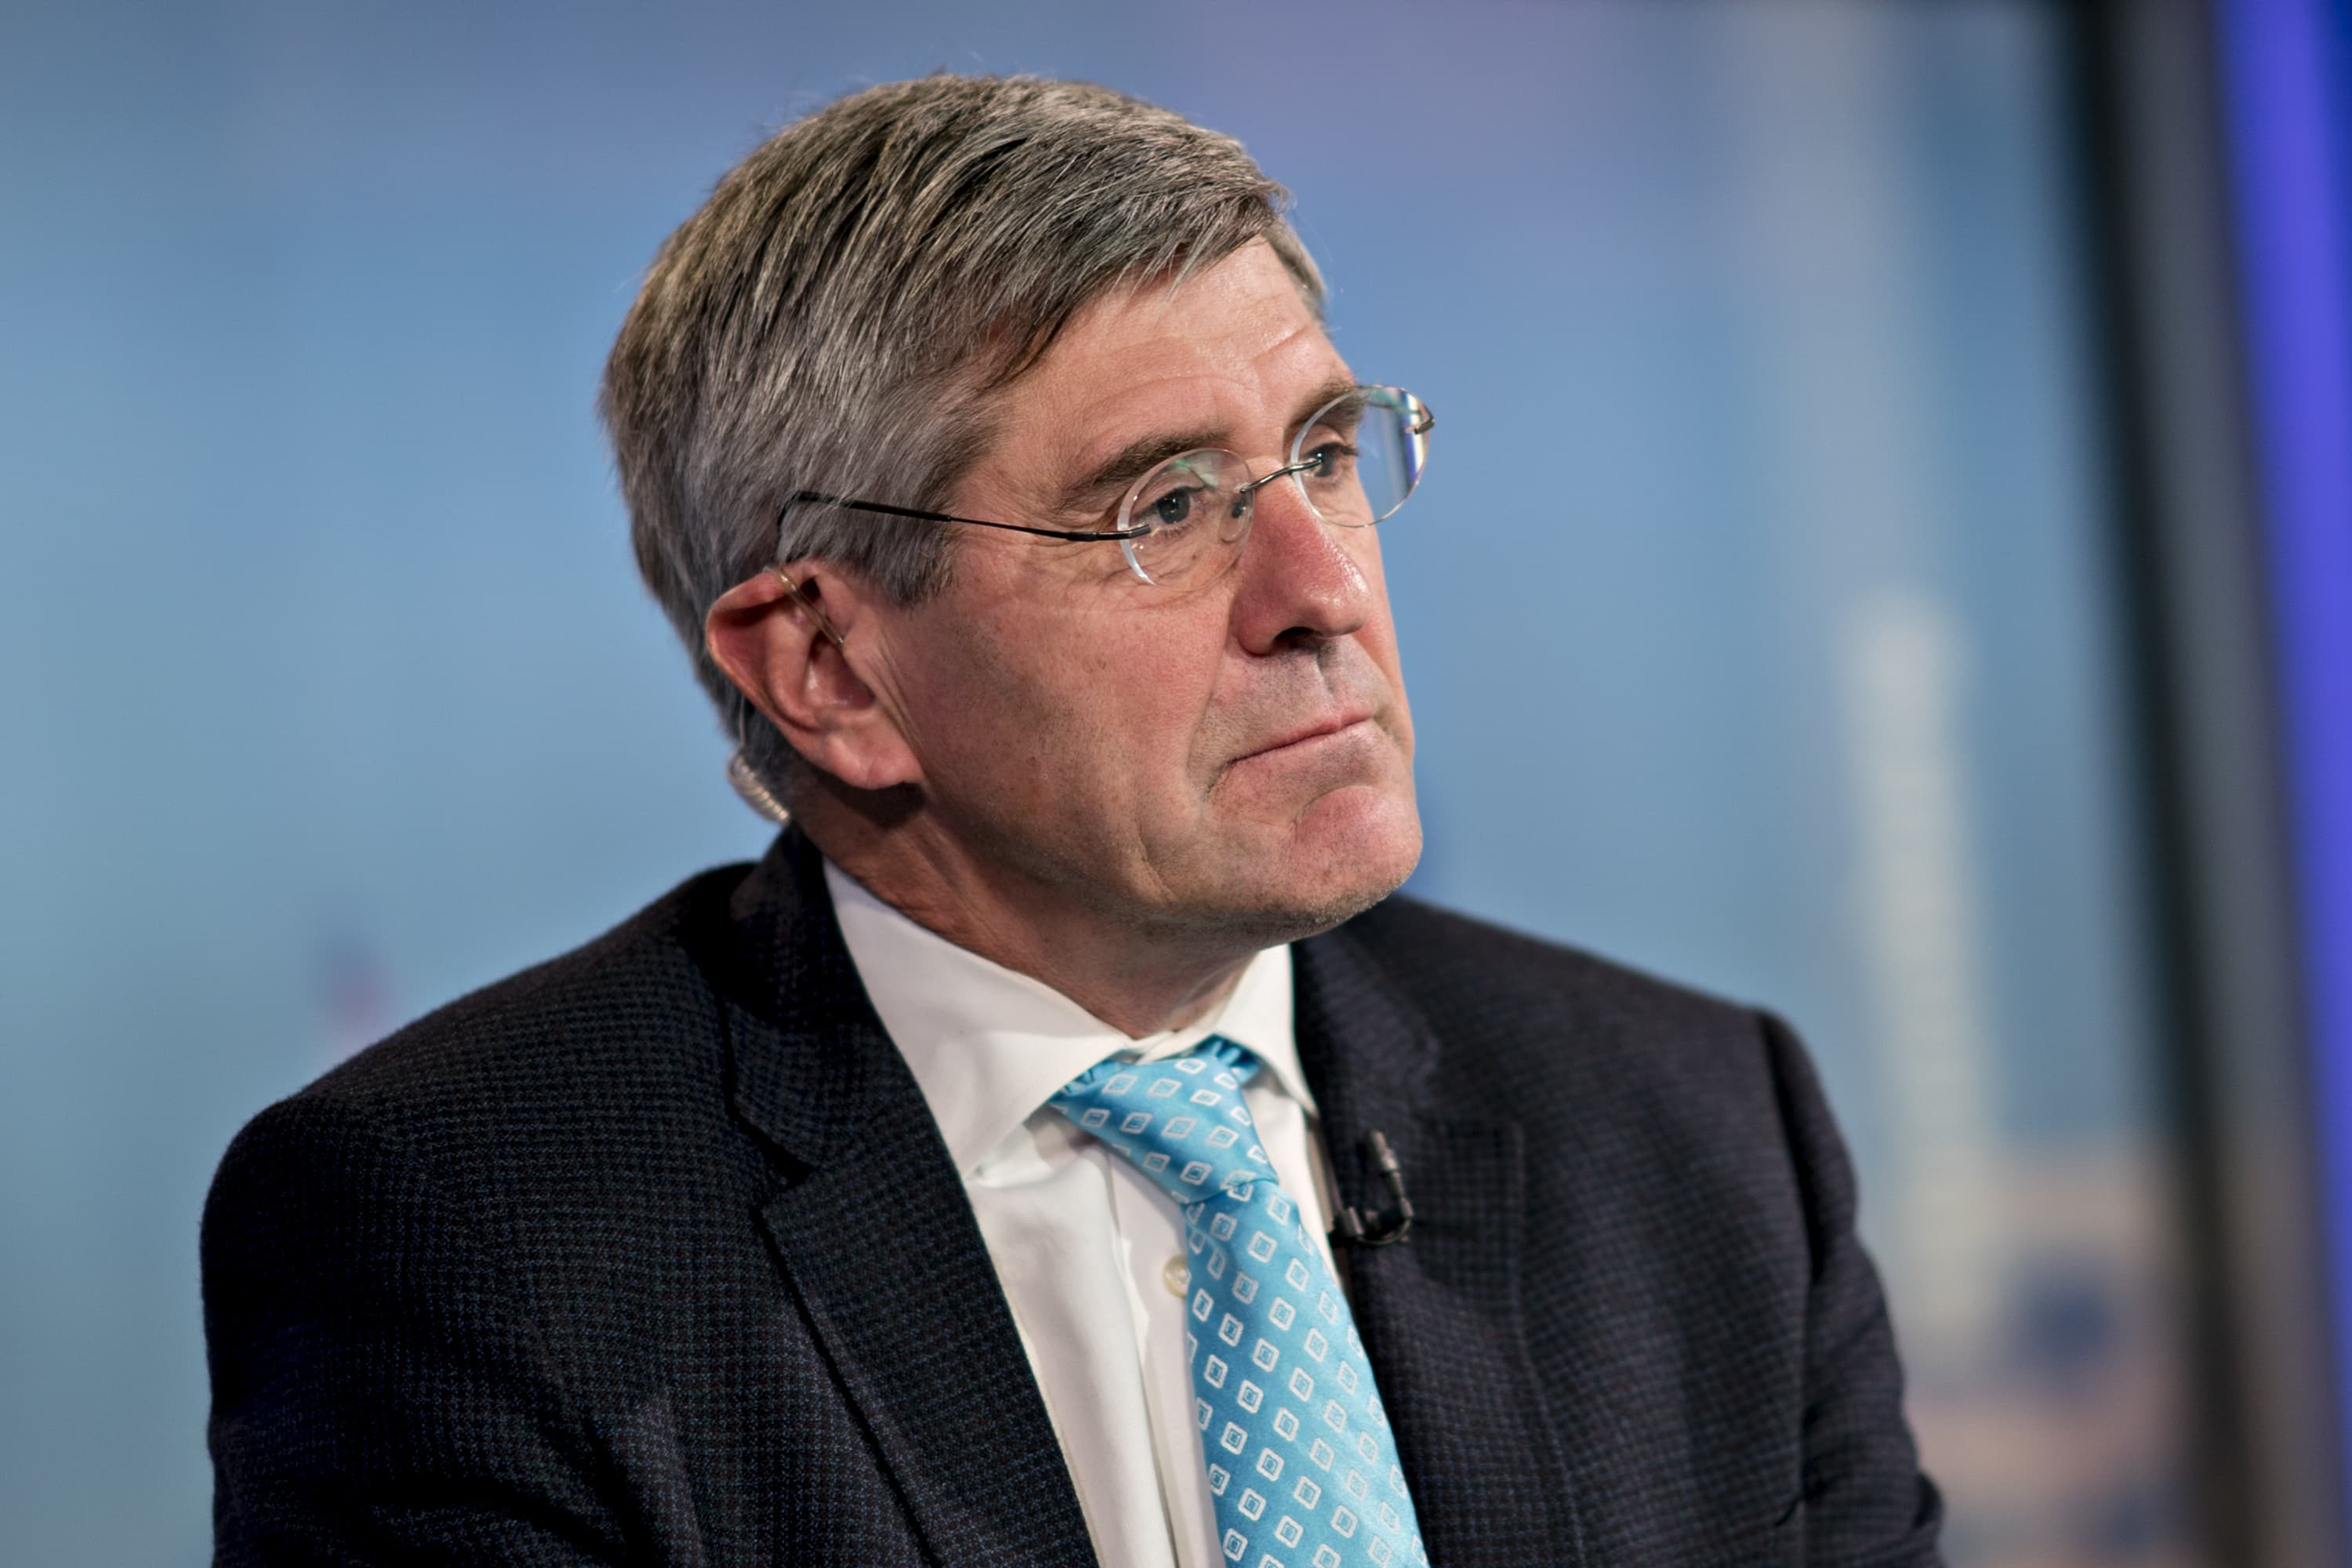 Former Trump campaign advisor Stephen Moore: 'We knew we weren't going to get 5% growth'